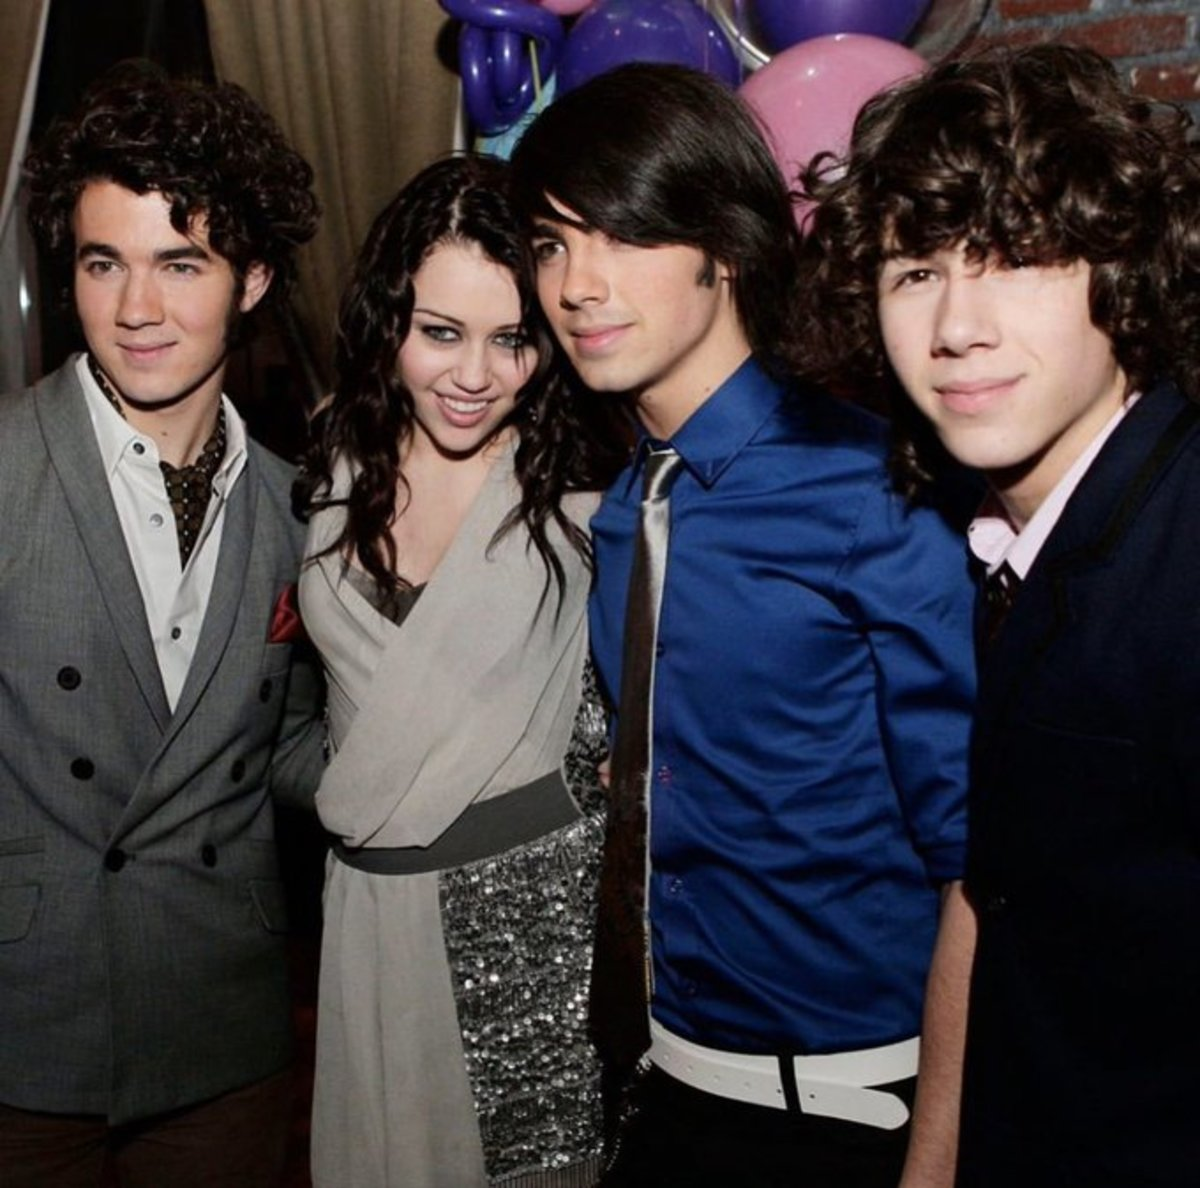 Miley at 15, with the Jonas Brothers